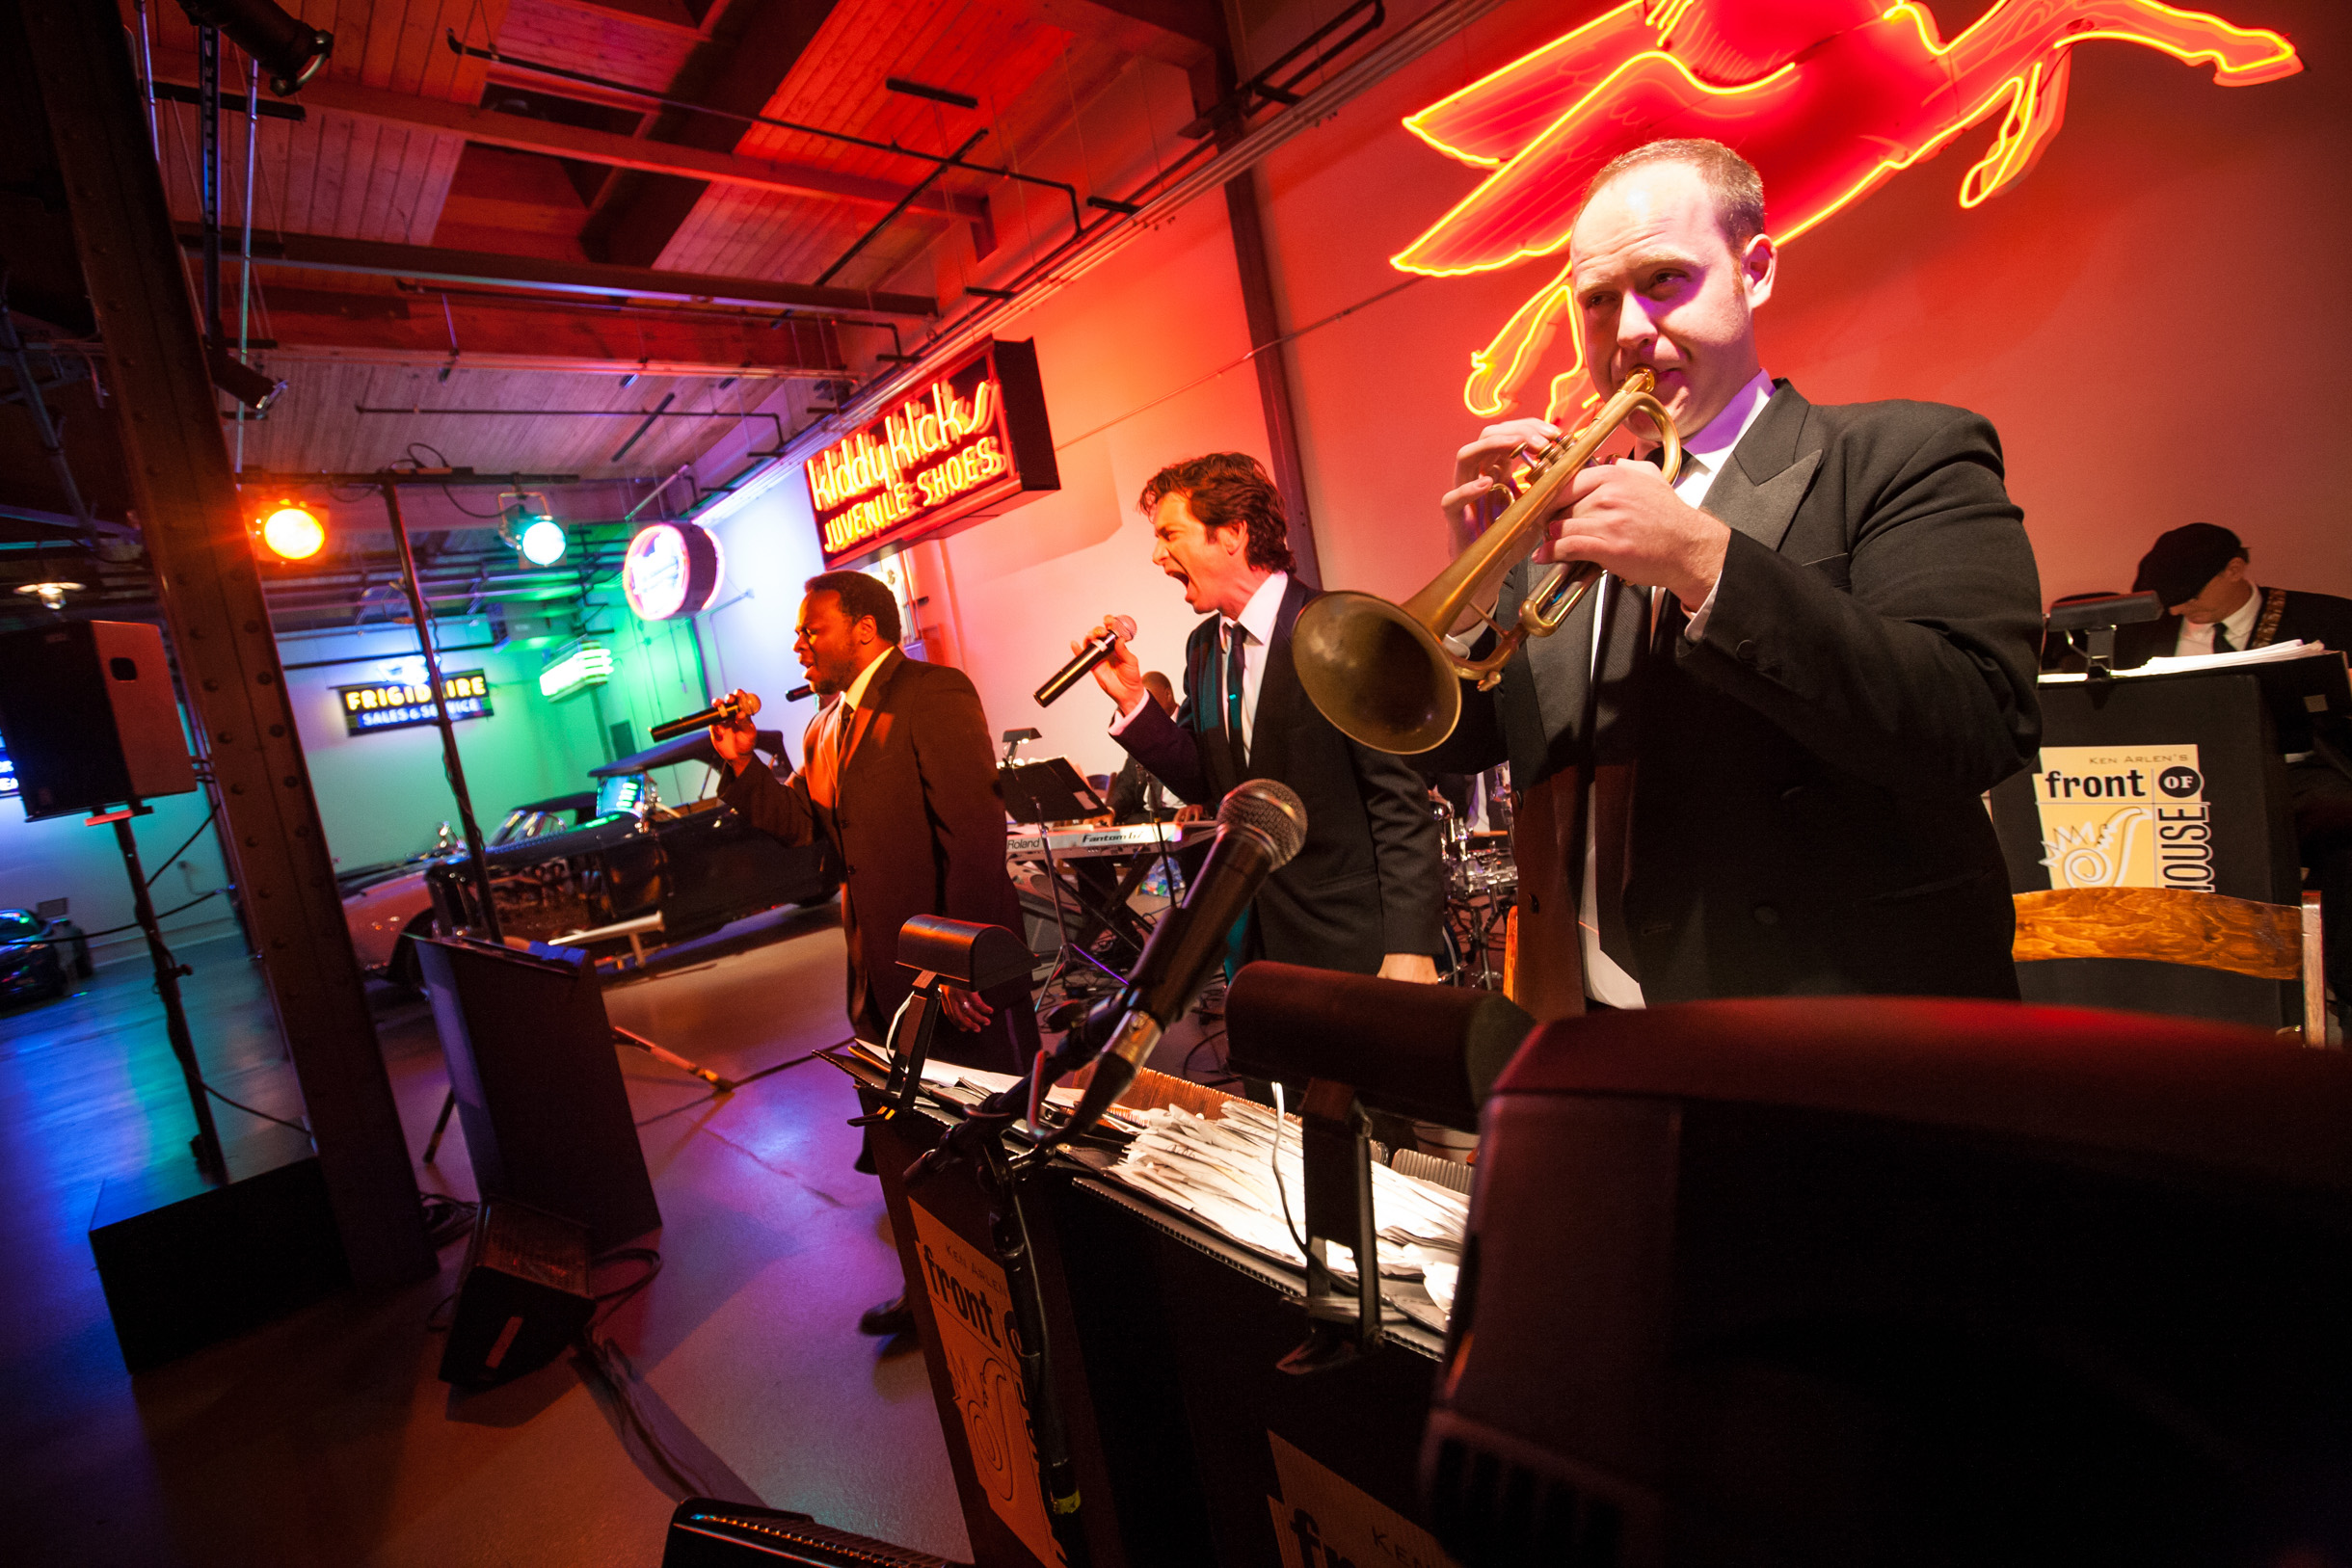 Wedding band performing at Ravenswood Event Center in Chicago with neon signs and classic cars-133